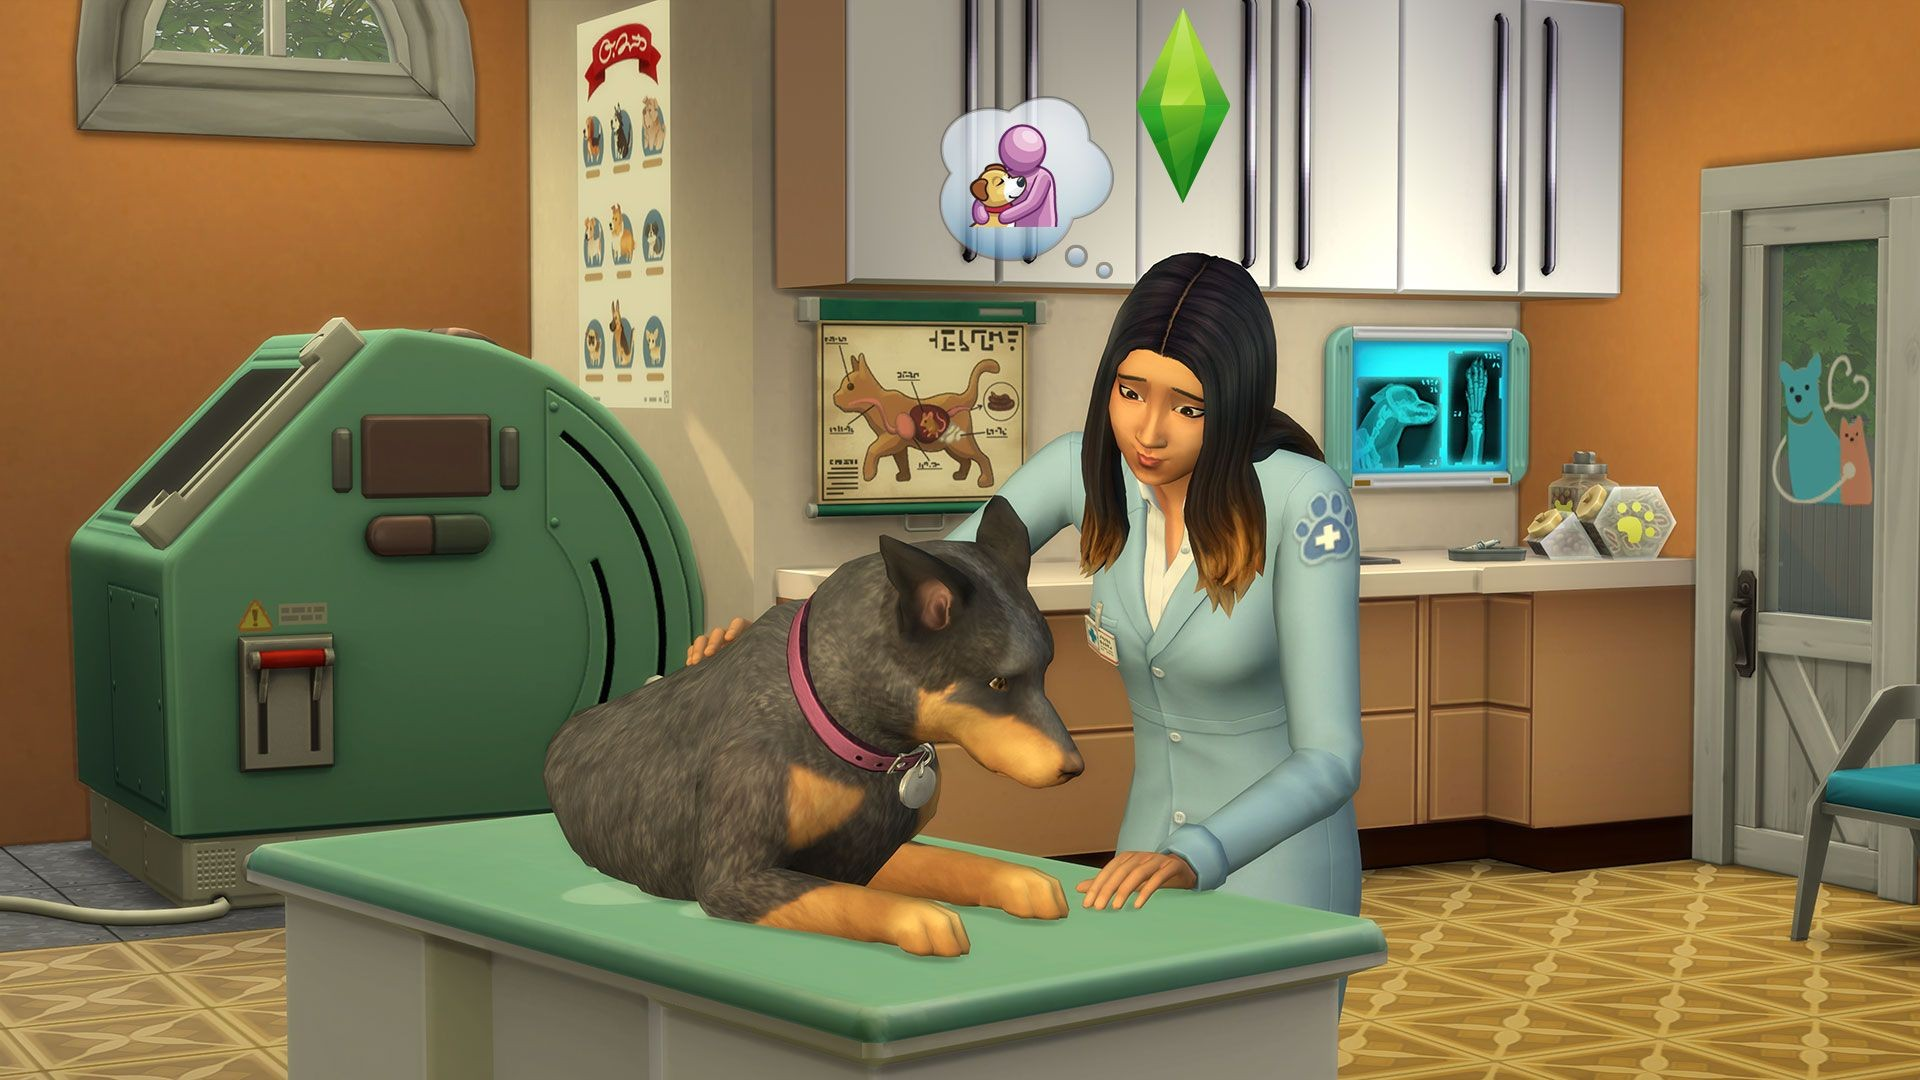 sims 4 cats and dogs wont download